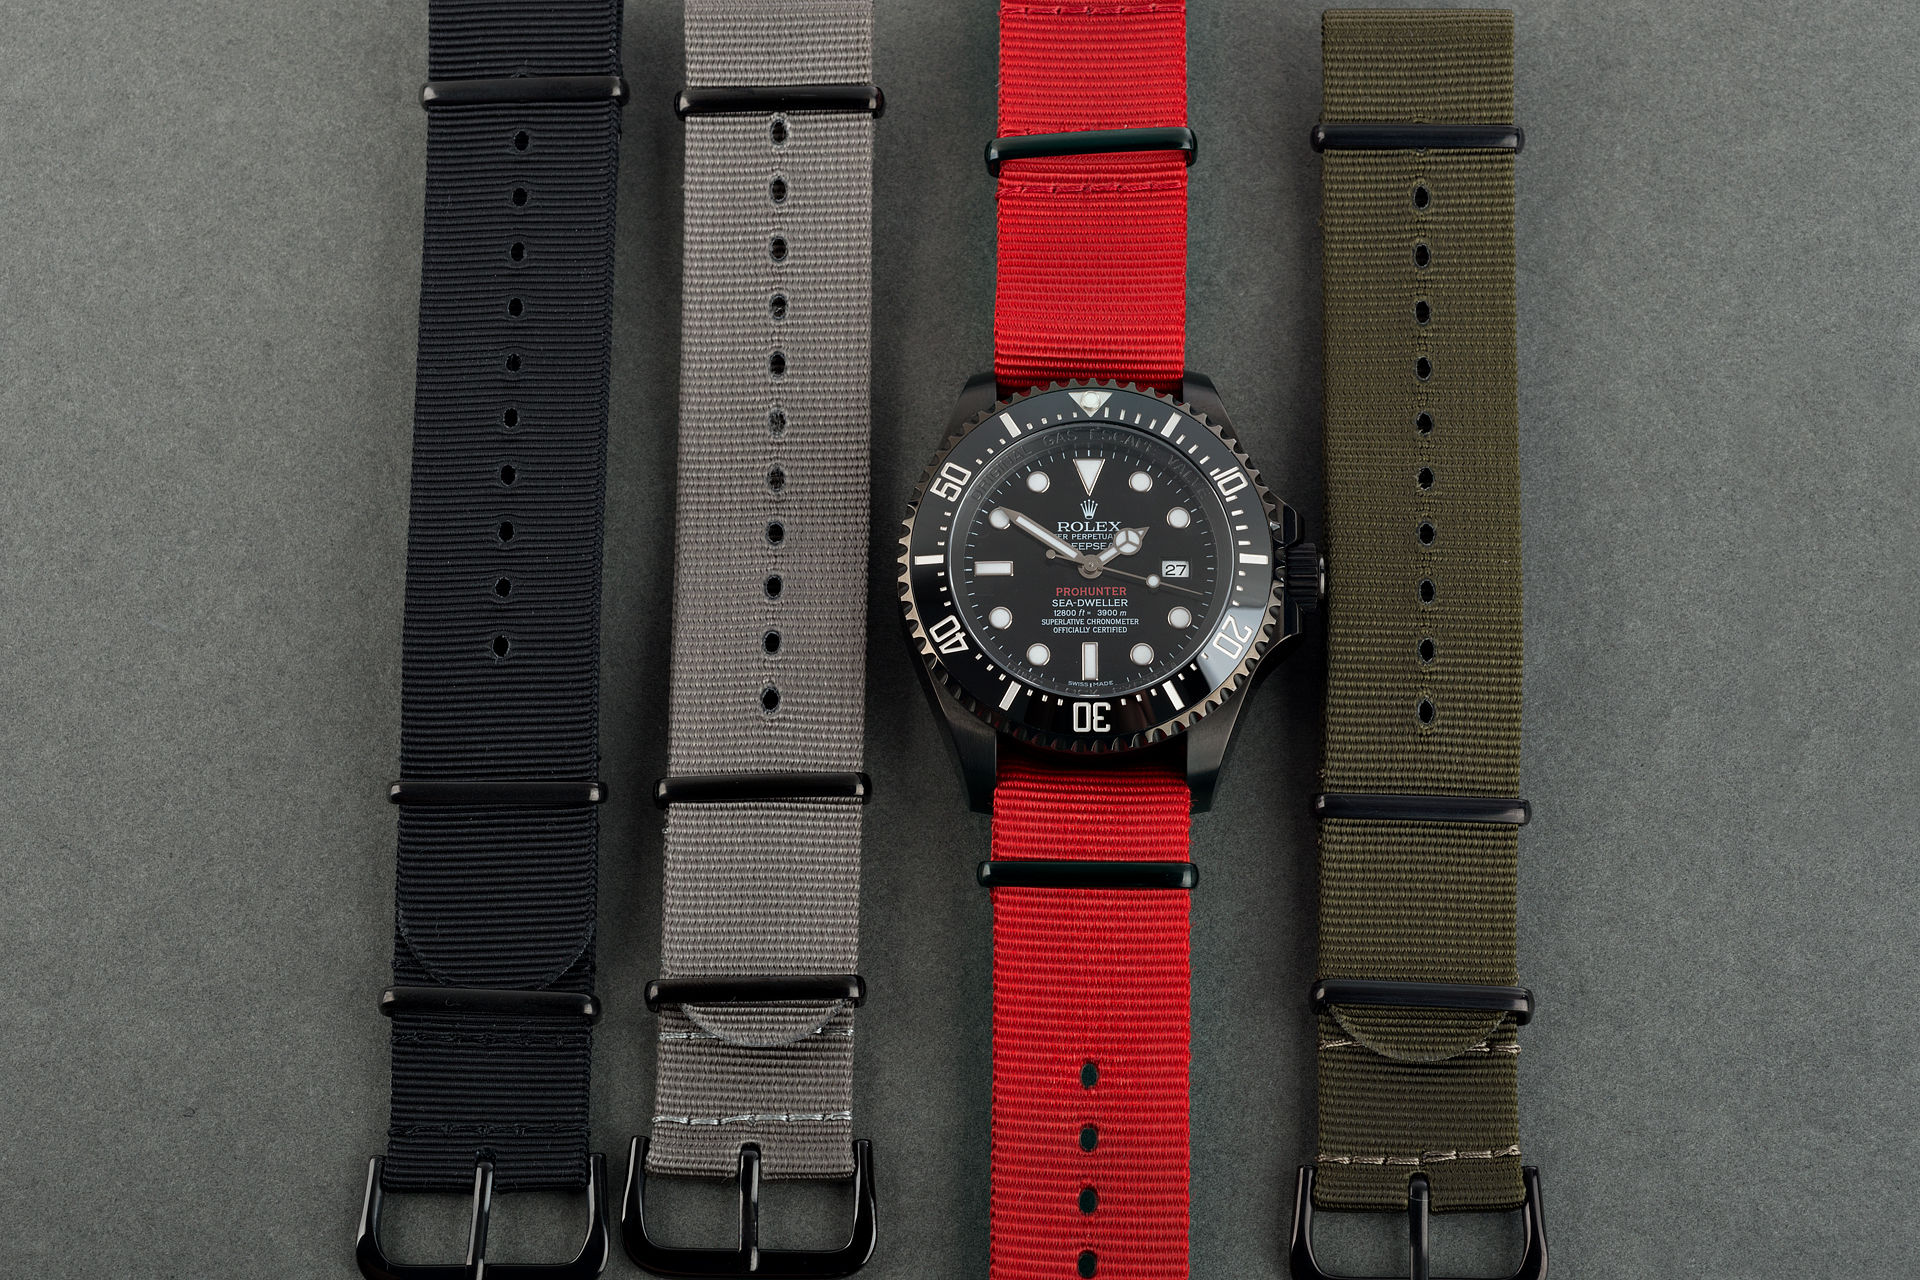 ref 116660 | Single Red Military 'One of 100' | Pro Hunter Sea-Dweller Deepsea